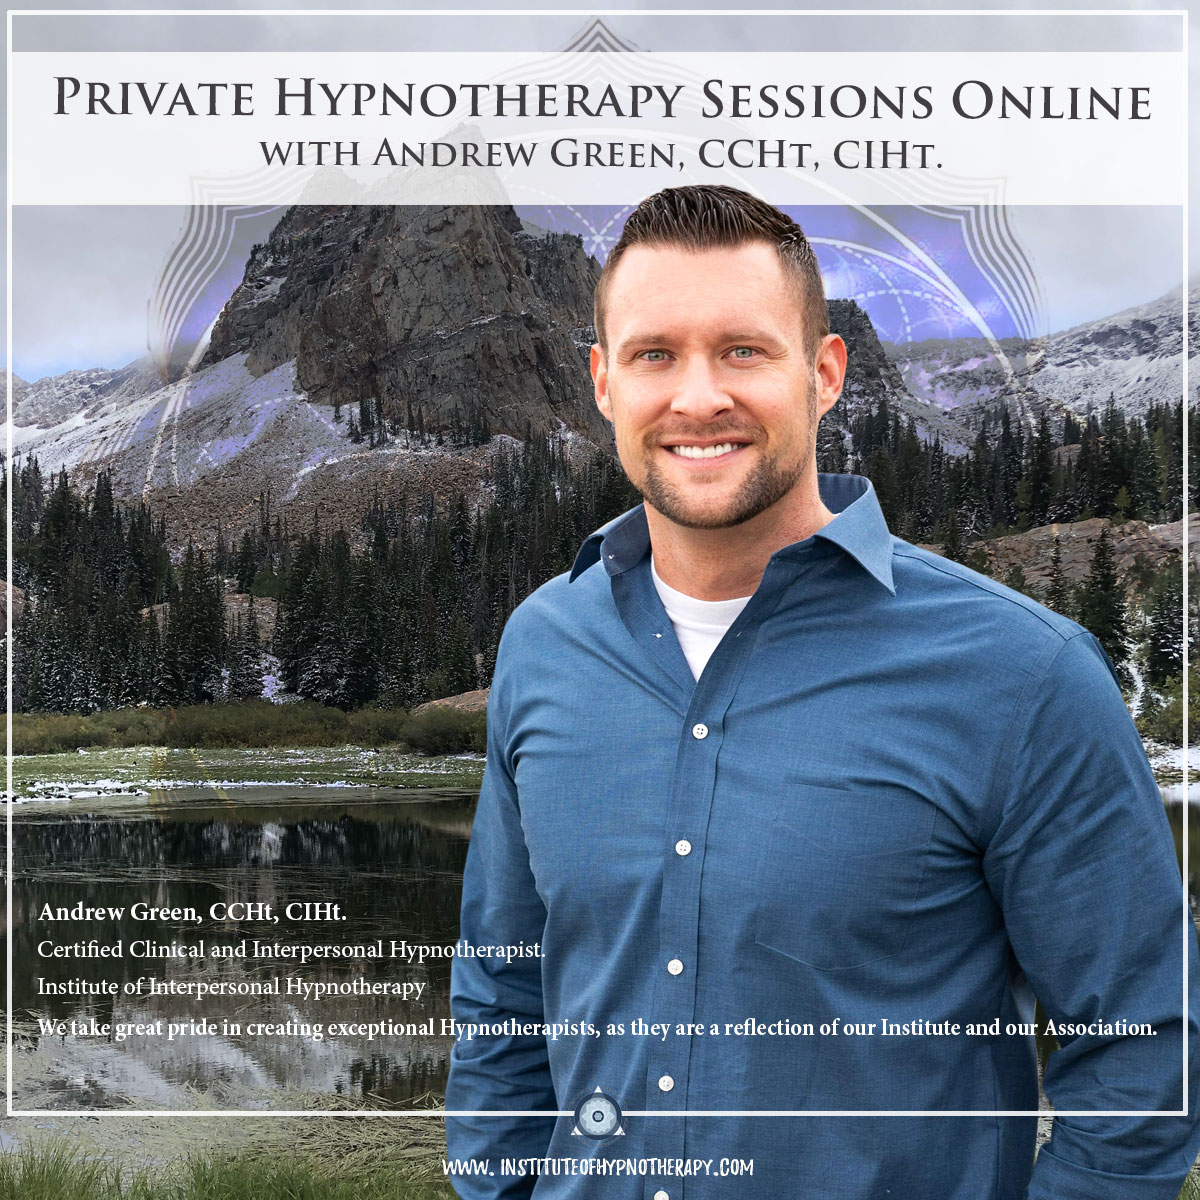 Hypnotherapy Clinics: Meet Andrew Green CIHt – Salt Lake City, Utah Director and Lead Instructor